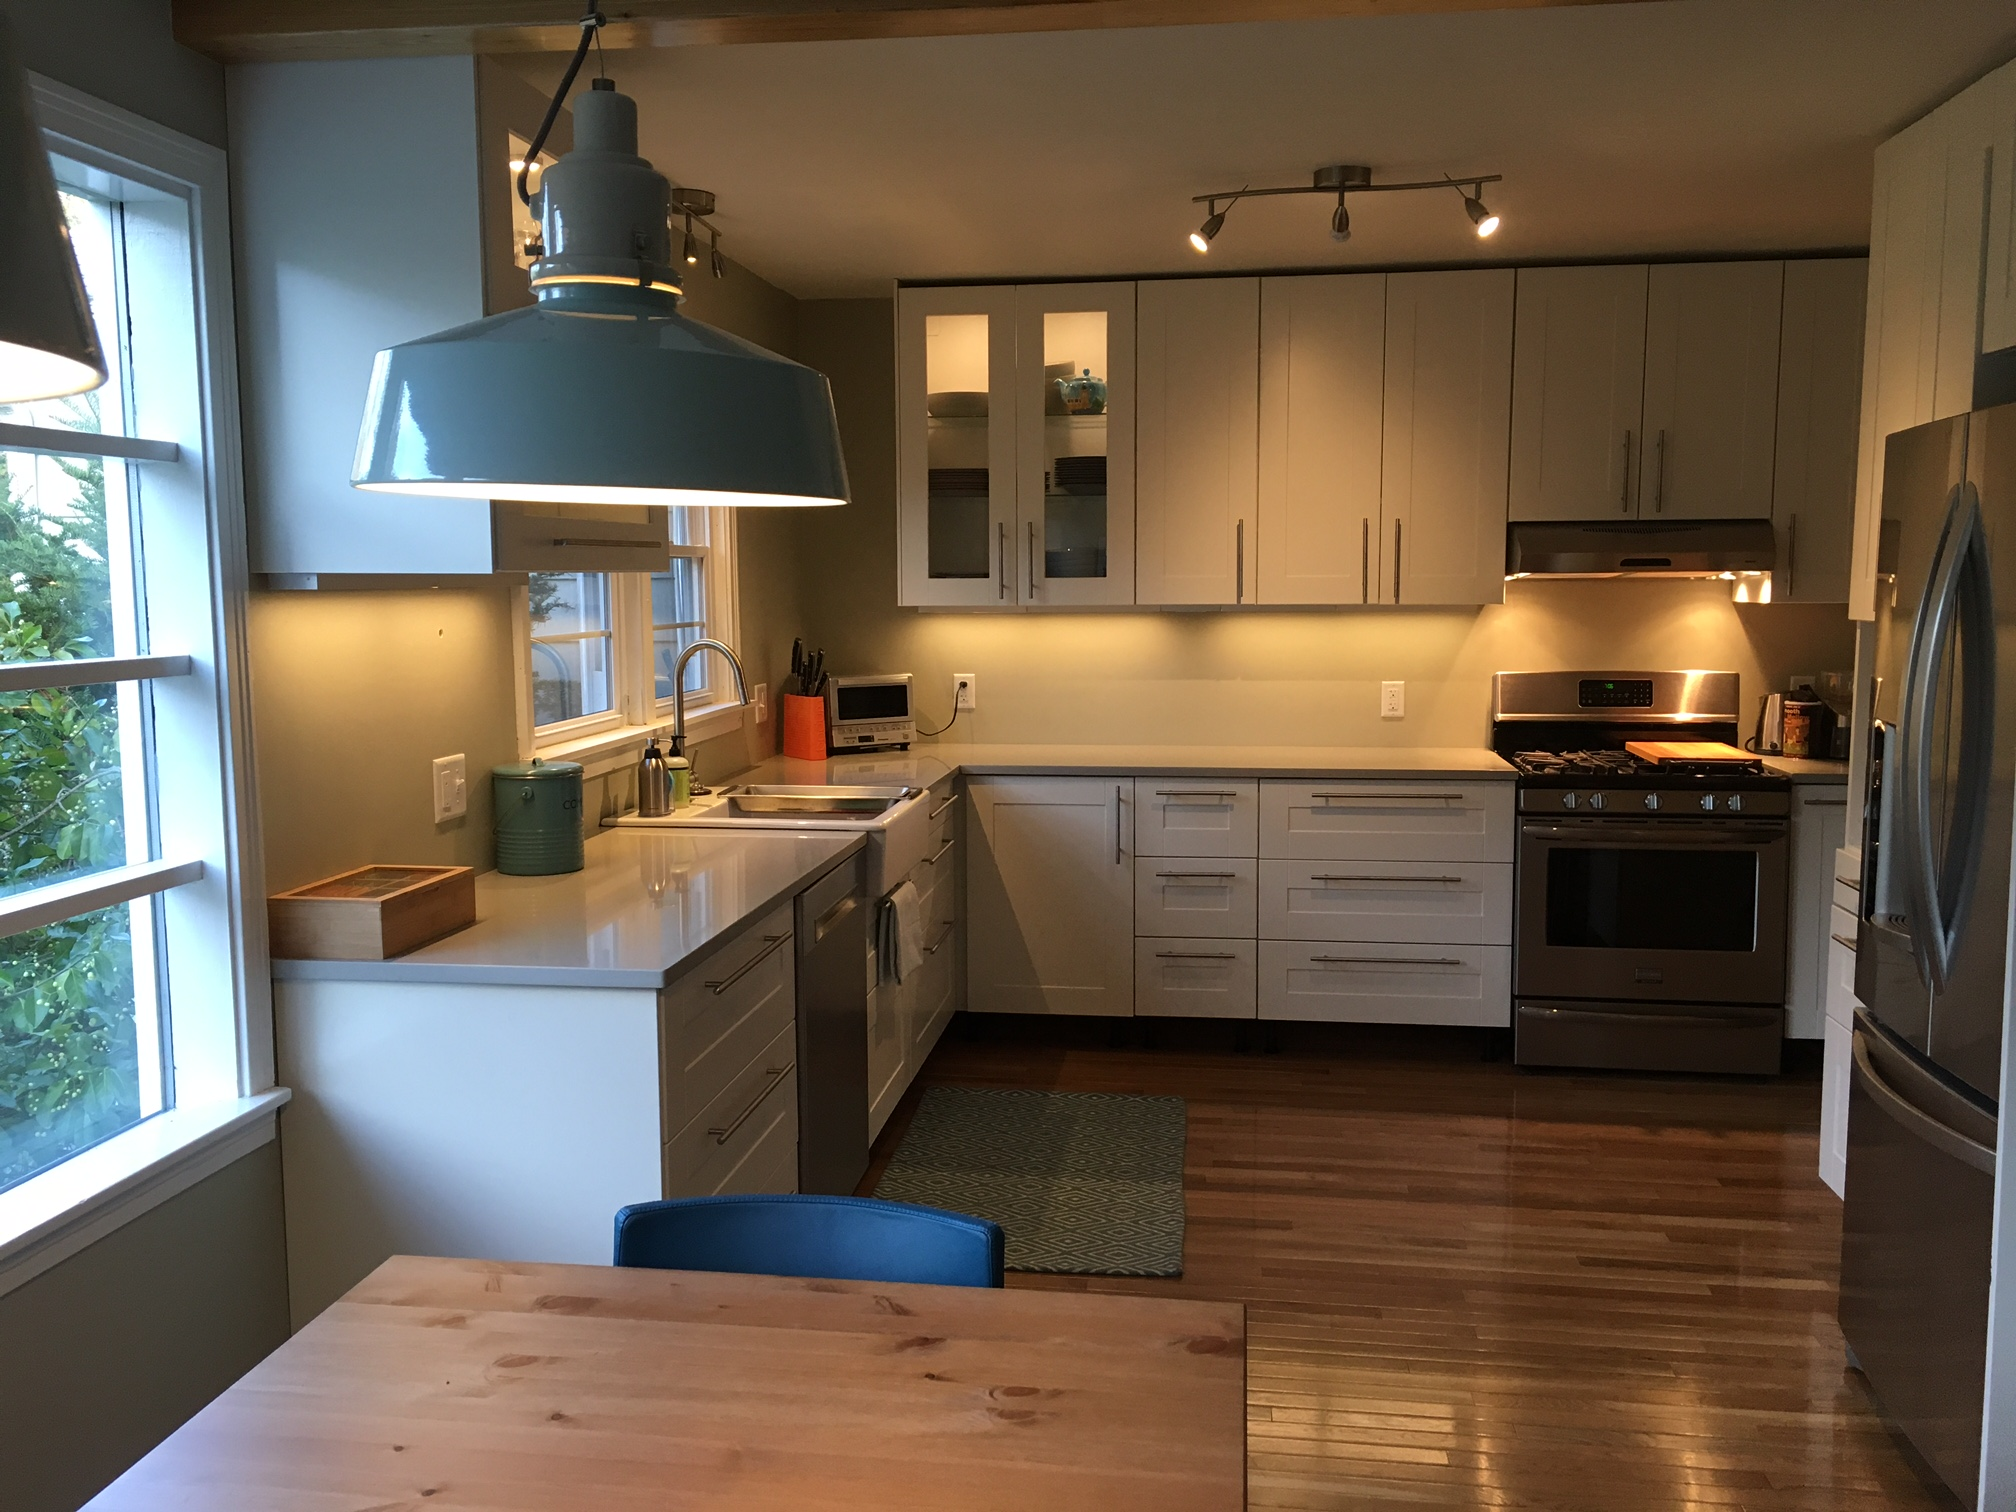 Ikea Küche Video A Gorgeous Ikea Kitchen Renovation In Upstate New York